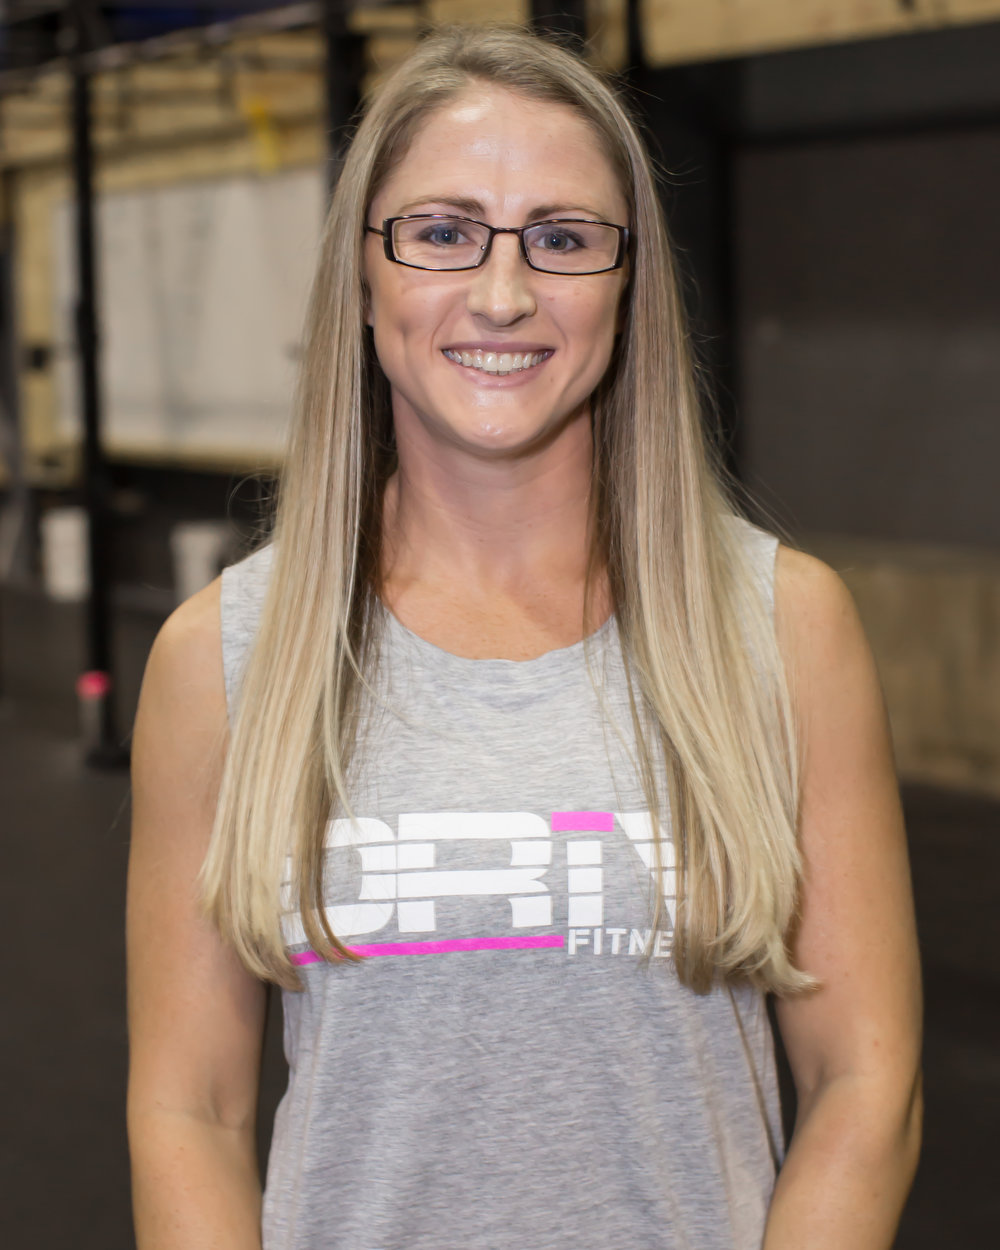 Kaylee Davis Coach, Moms in Training Director - CrossFit Courses - Level 1, 2, Pregnancy and Postpartum Athleticism